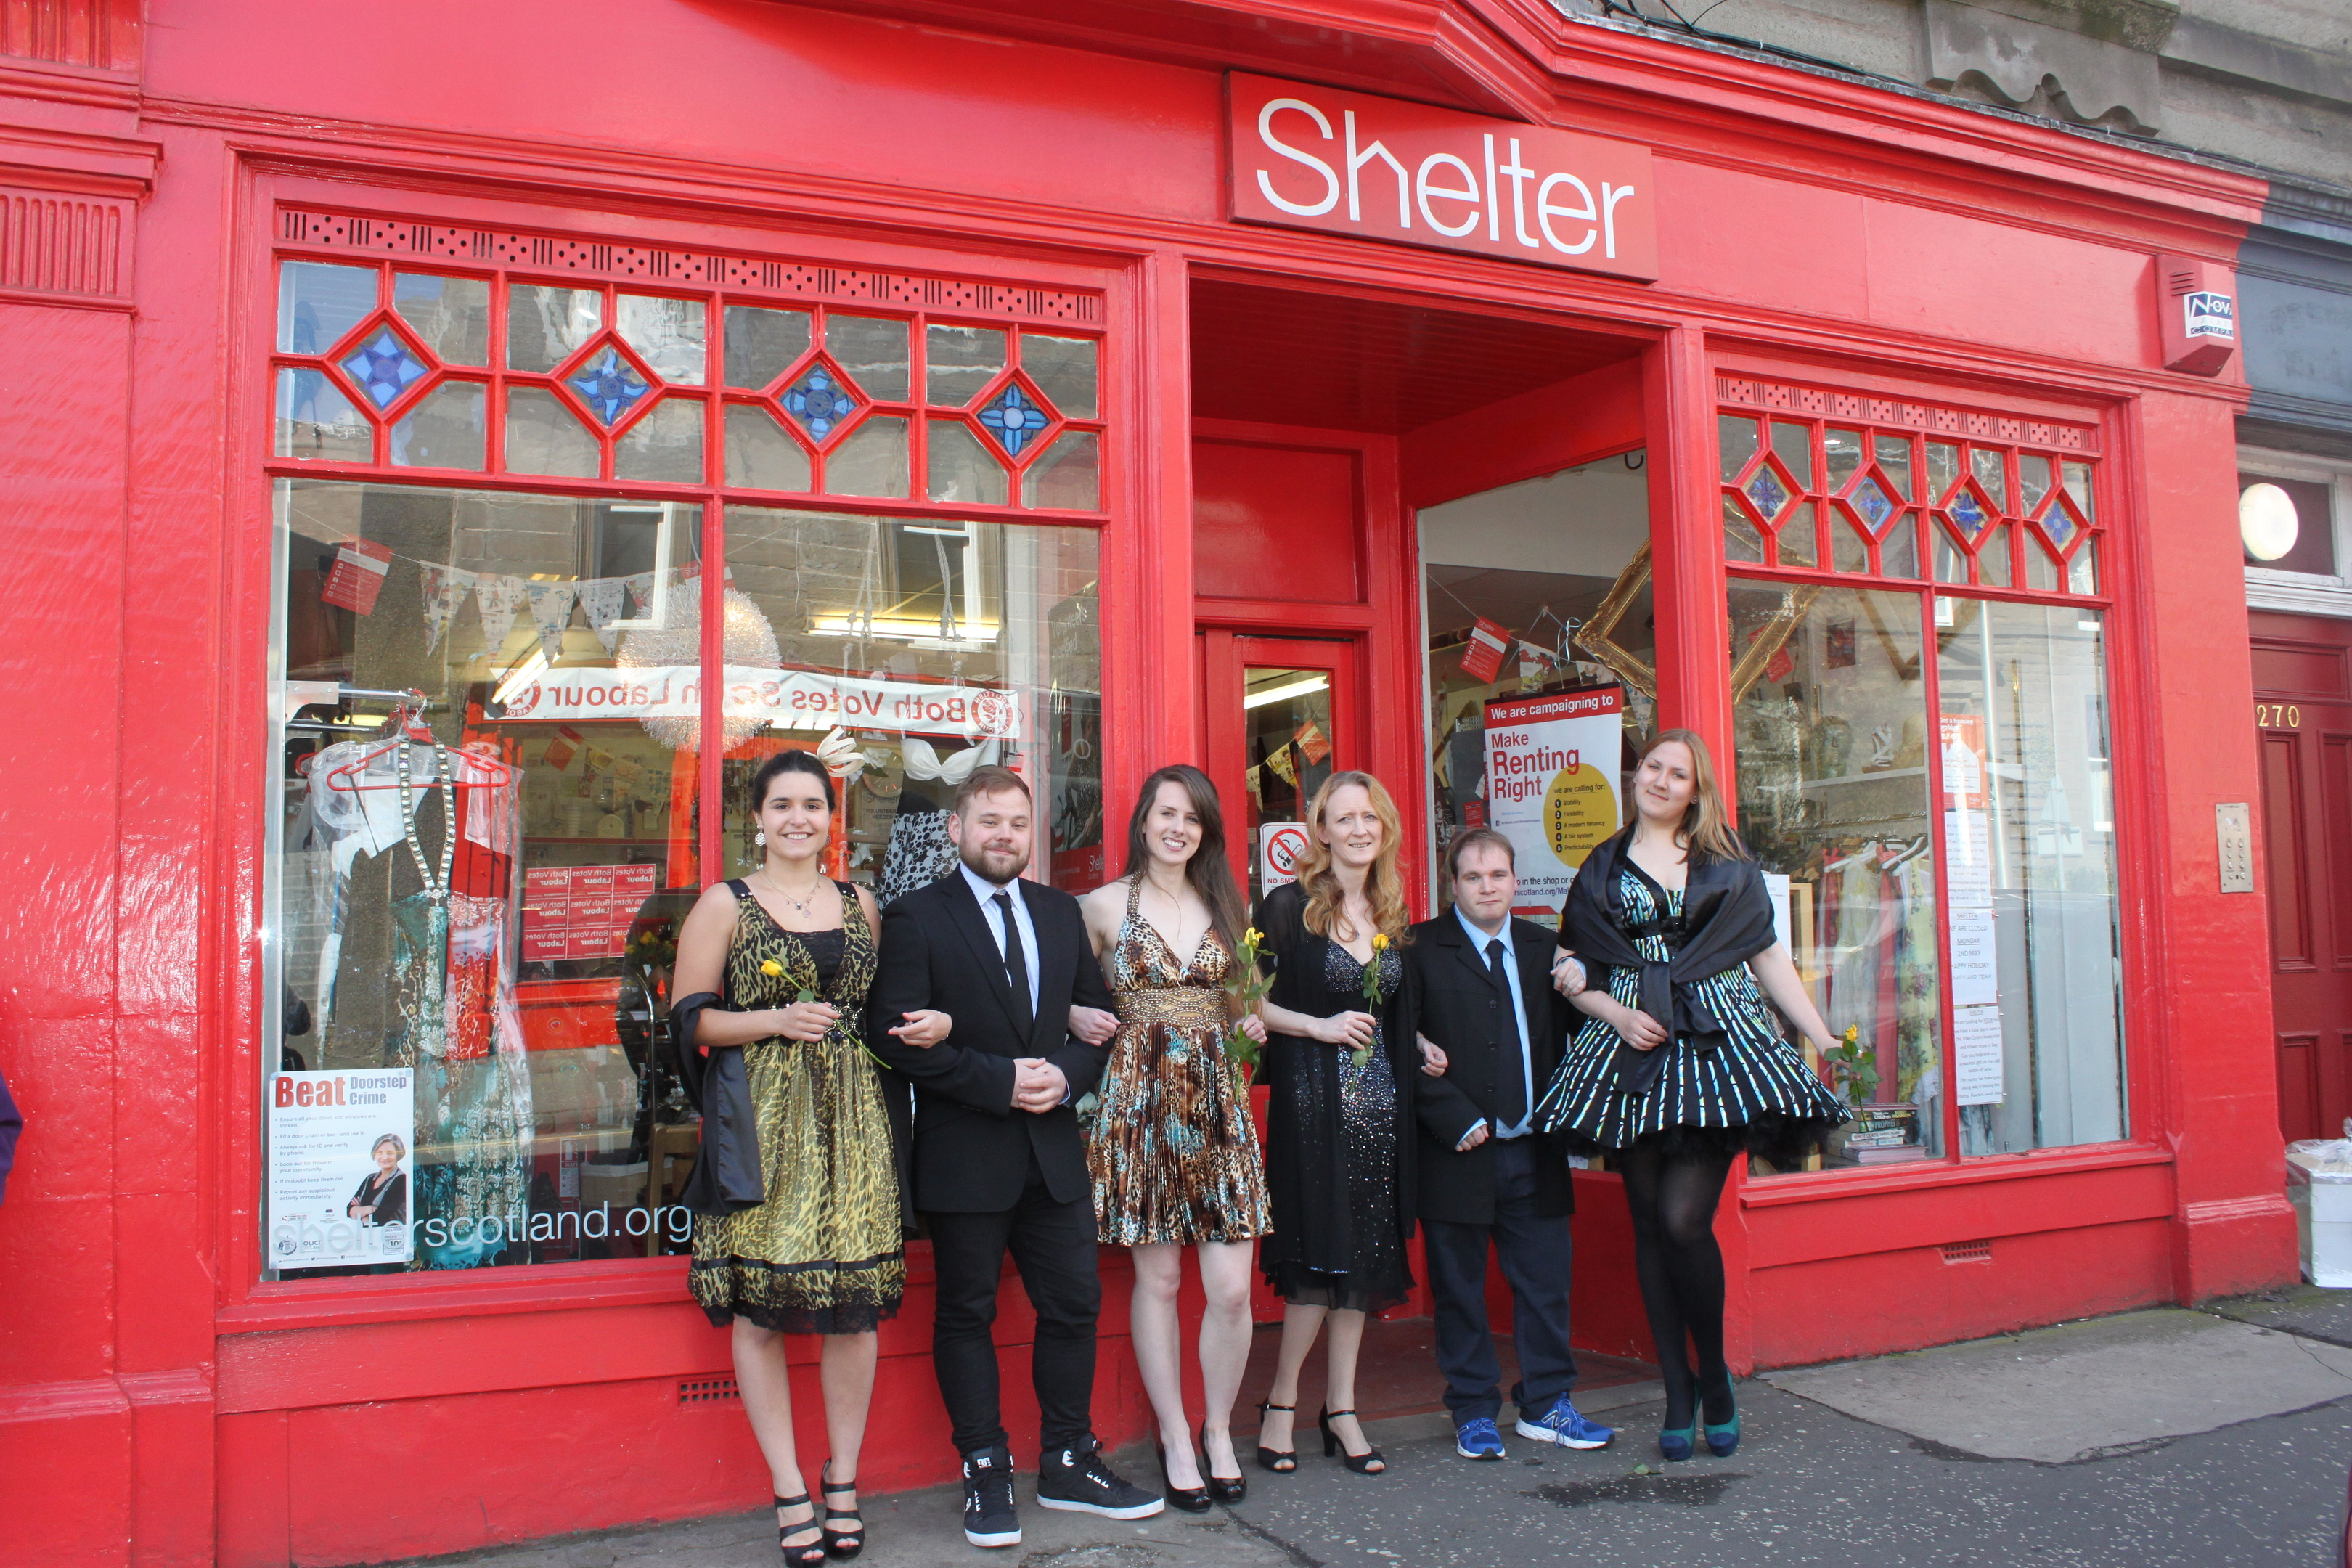 Some of the dresses on offer are modelled outside the Perth Road store.